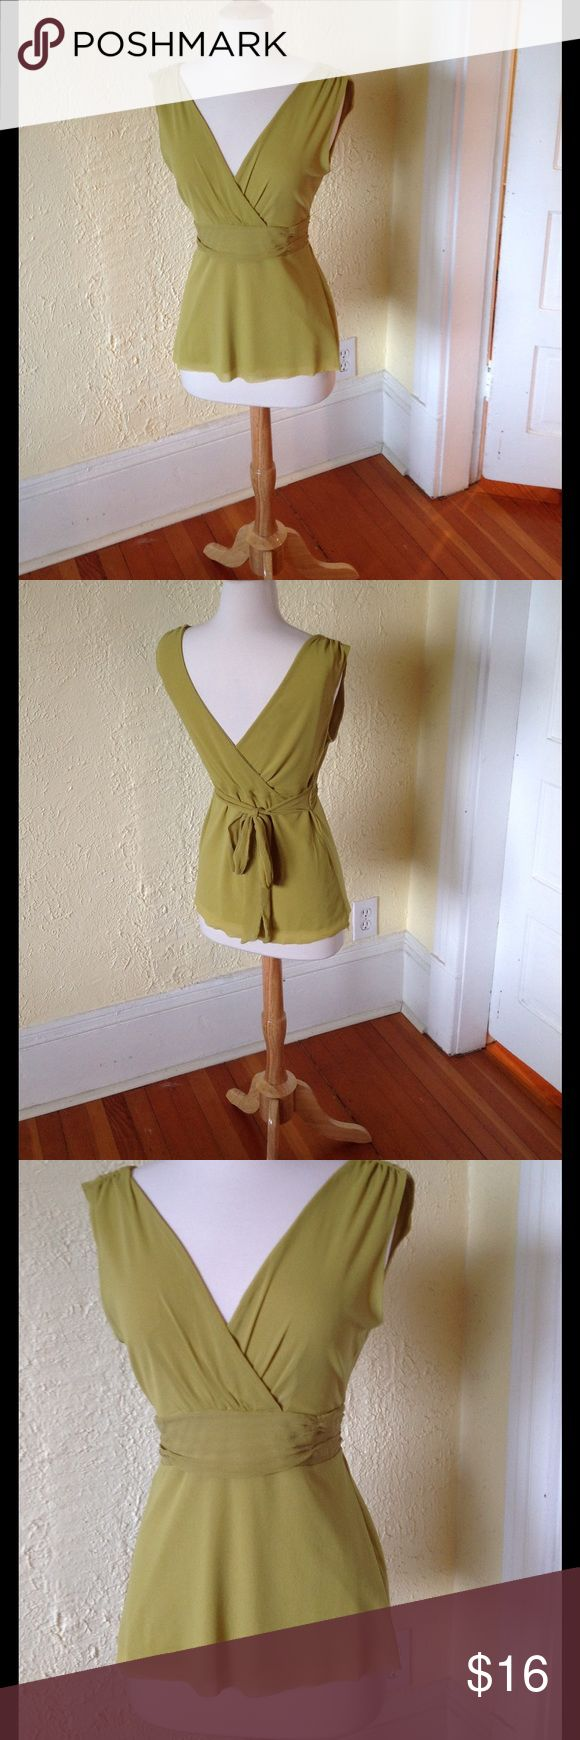 """ANTHROPOLOGIE Grecian Top by Weston Wear Rare find from very early 2000s. Double v neck pullover styling with tie back waist. Double layer of 100% silk. 17"""" bust, 14"""" waist, 25"""" long from shoulder. Anthropologie Tops Tank Tops"""